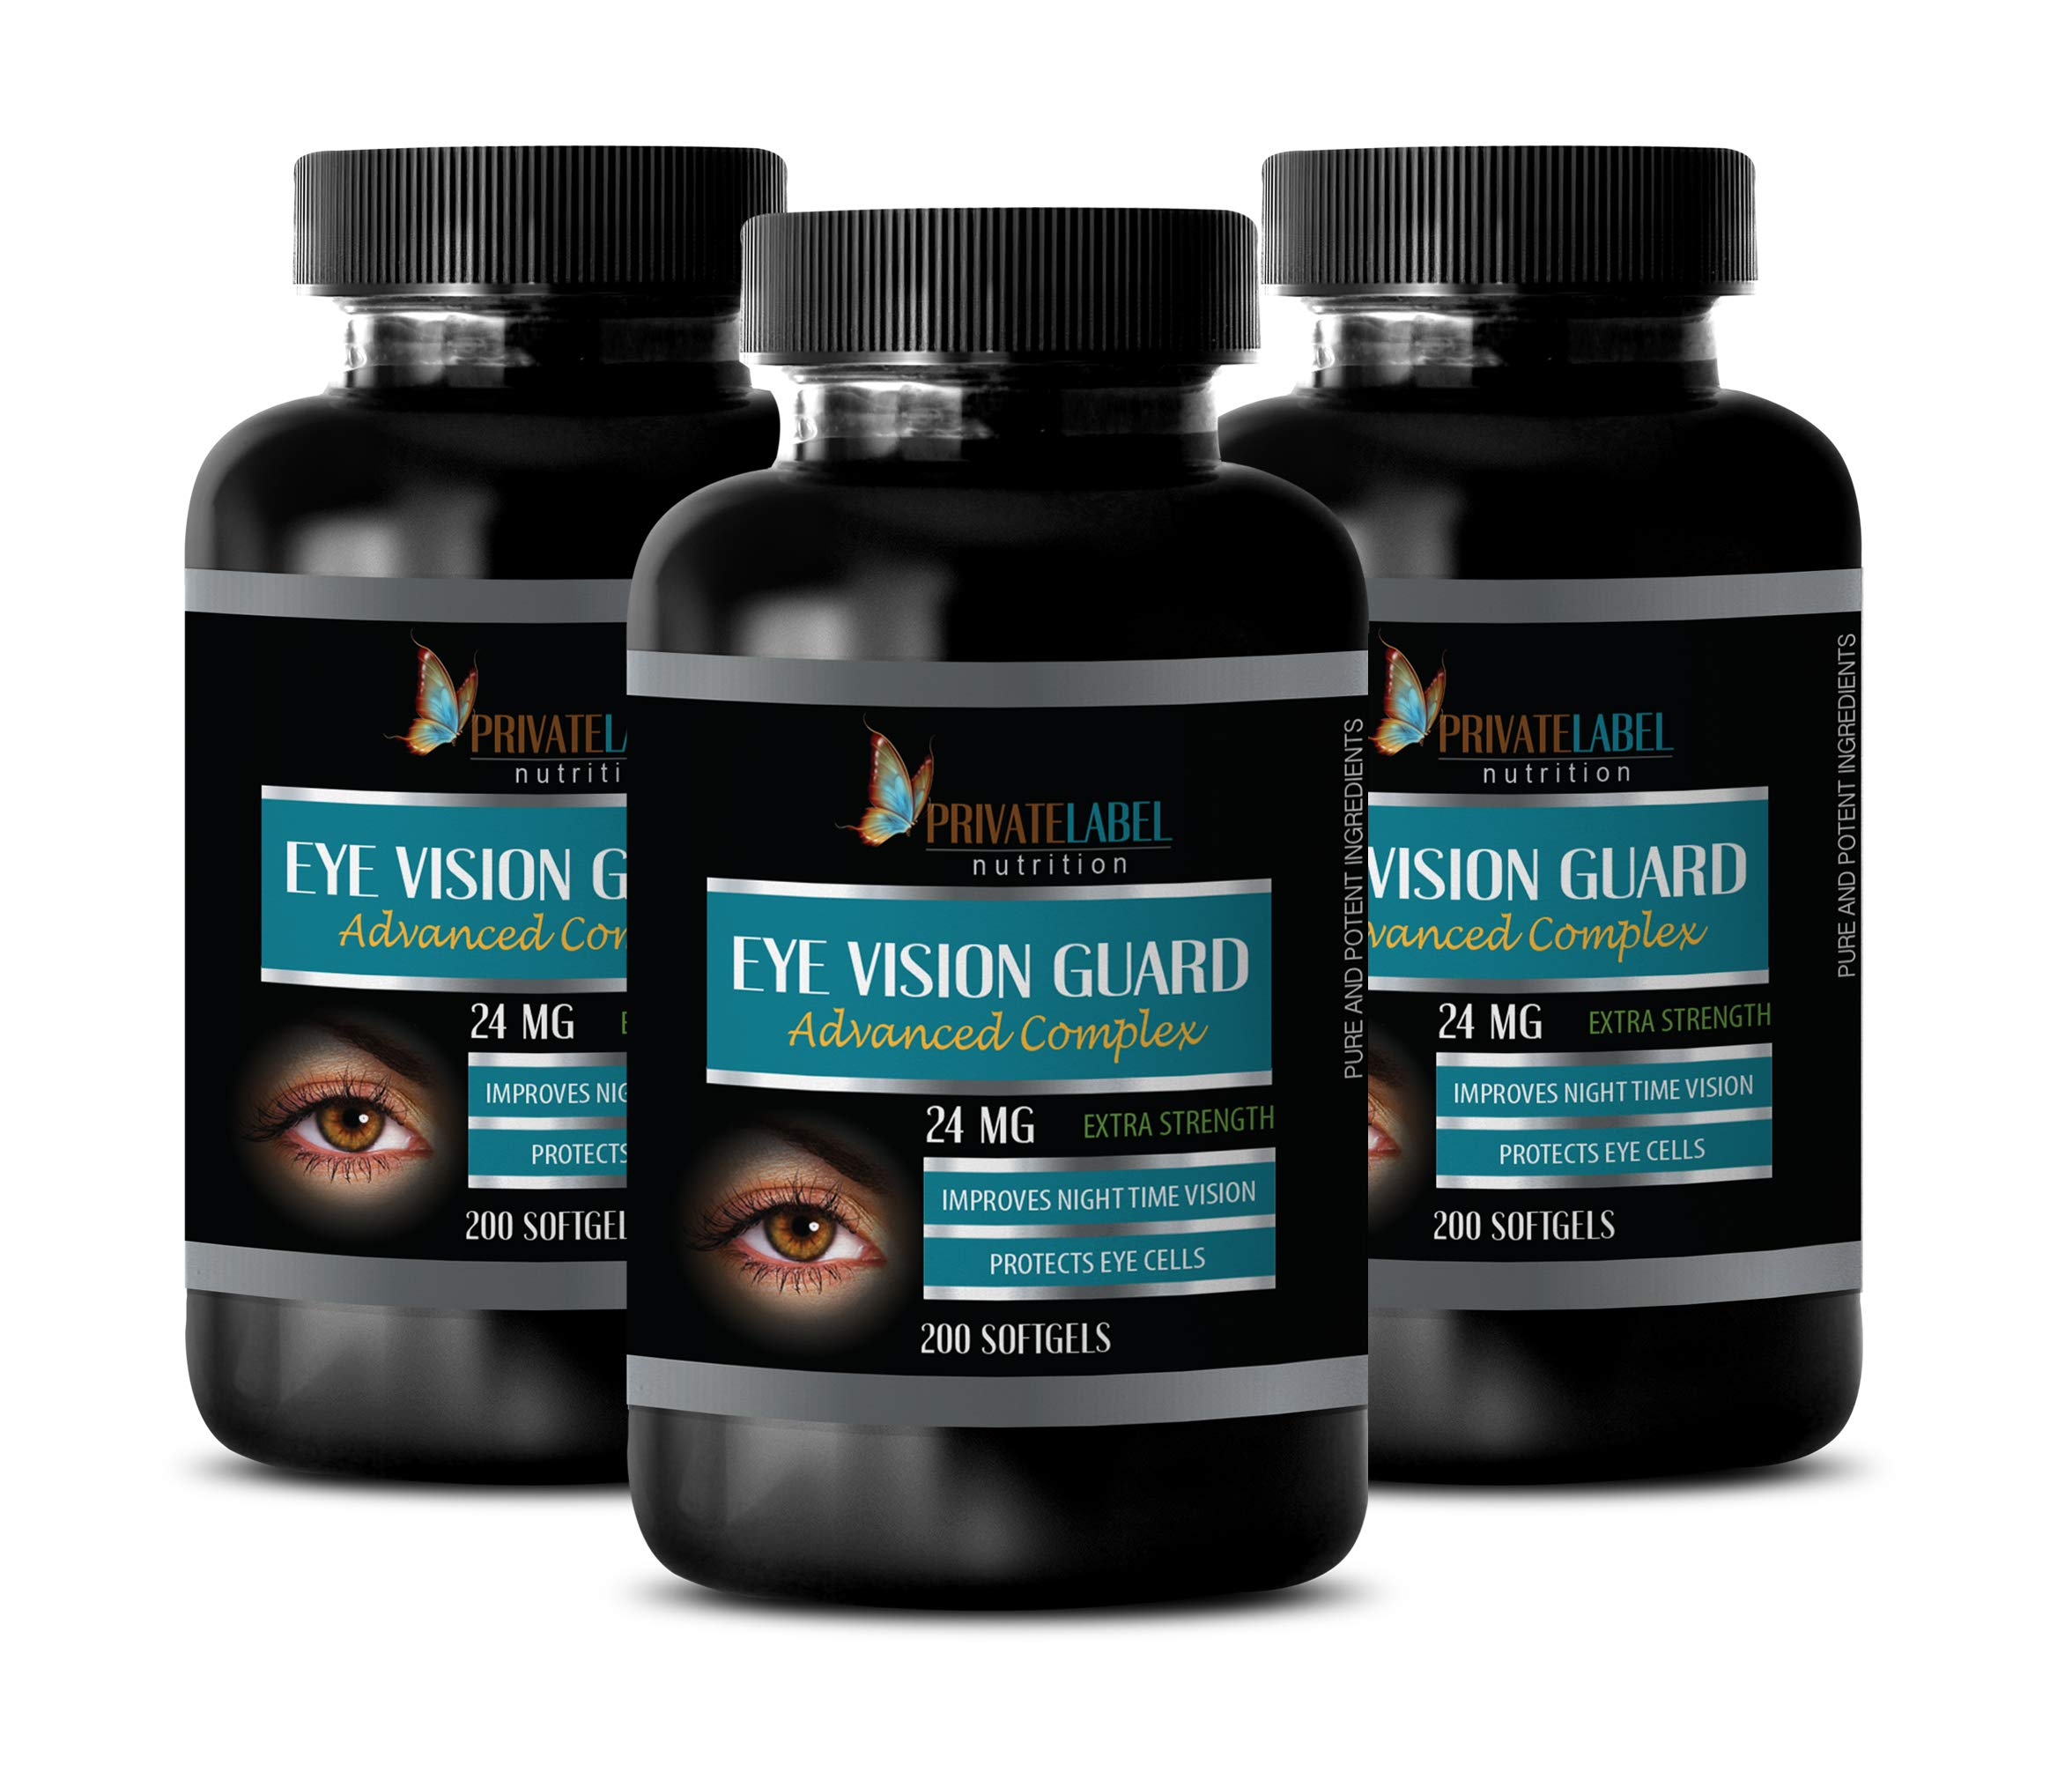 Vision Support Vitamins - Eye Vision Guard 24 MG - Advanced Complex - Bilberry Extract softgels - 3 Bottles 600 Softgels